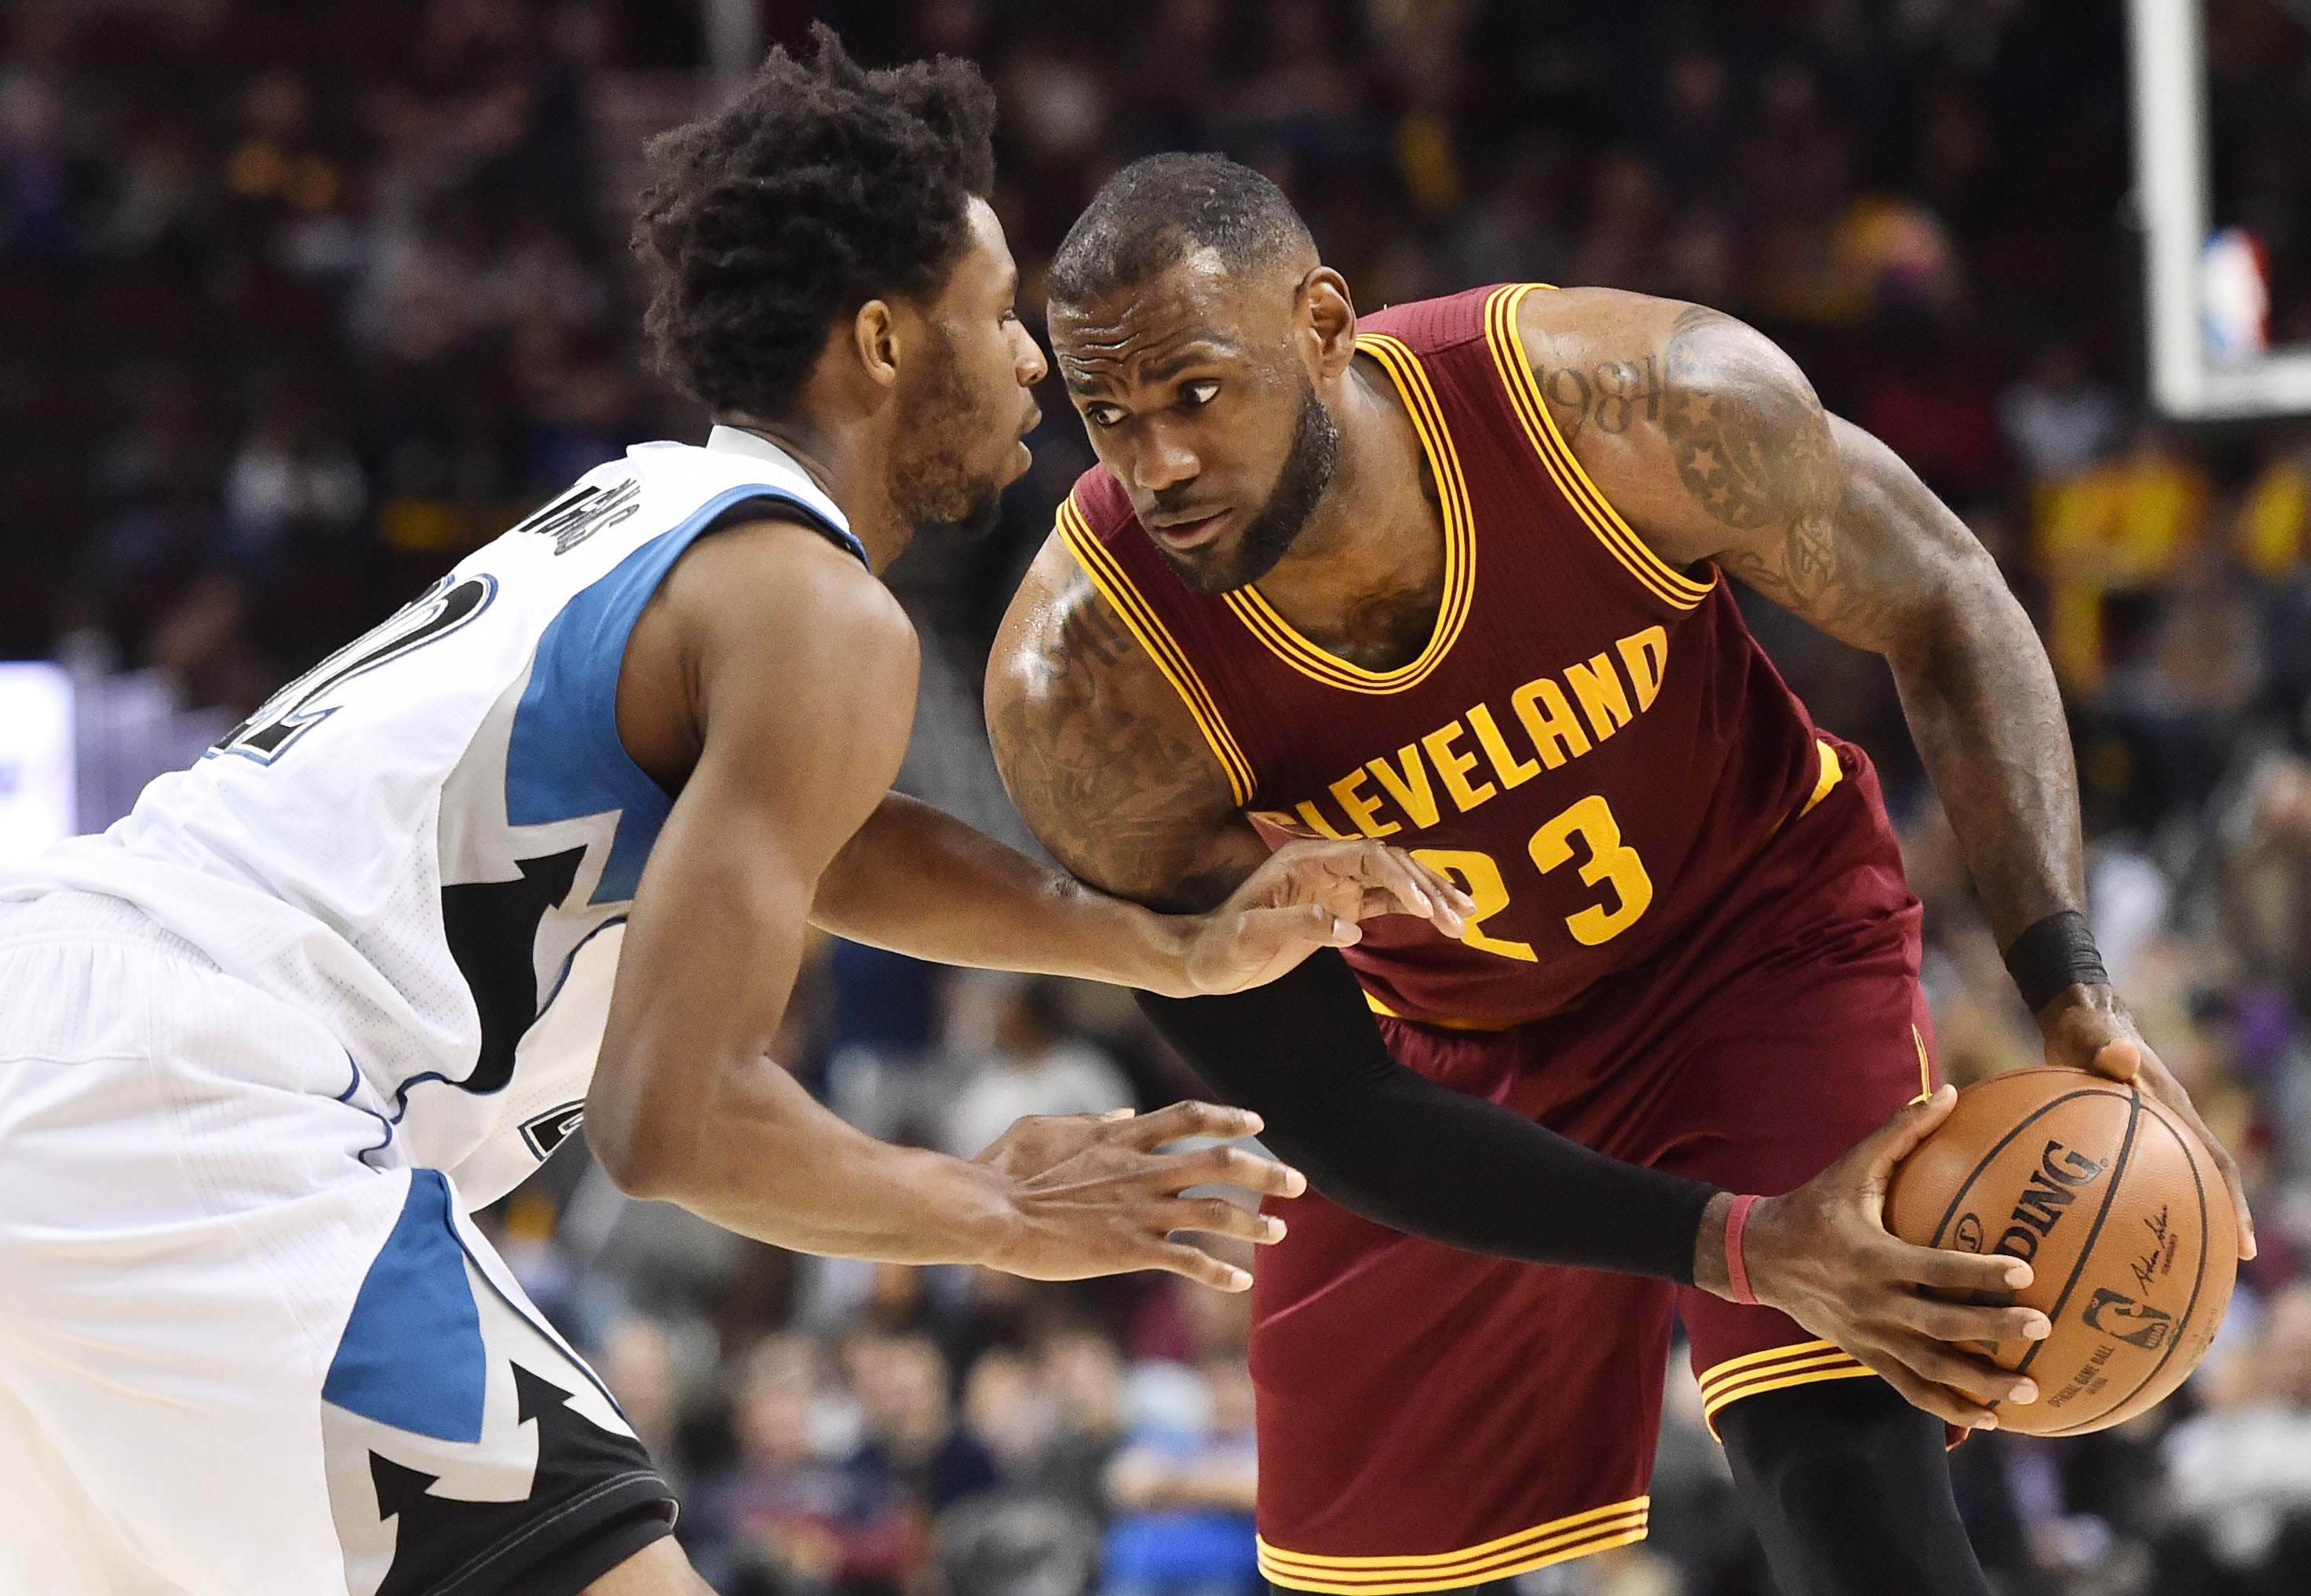 9852797-nba-minnesota-timberwolves-at-cleveland-cavaliers